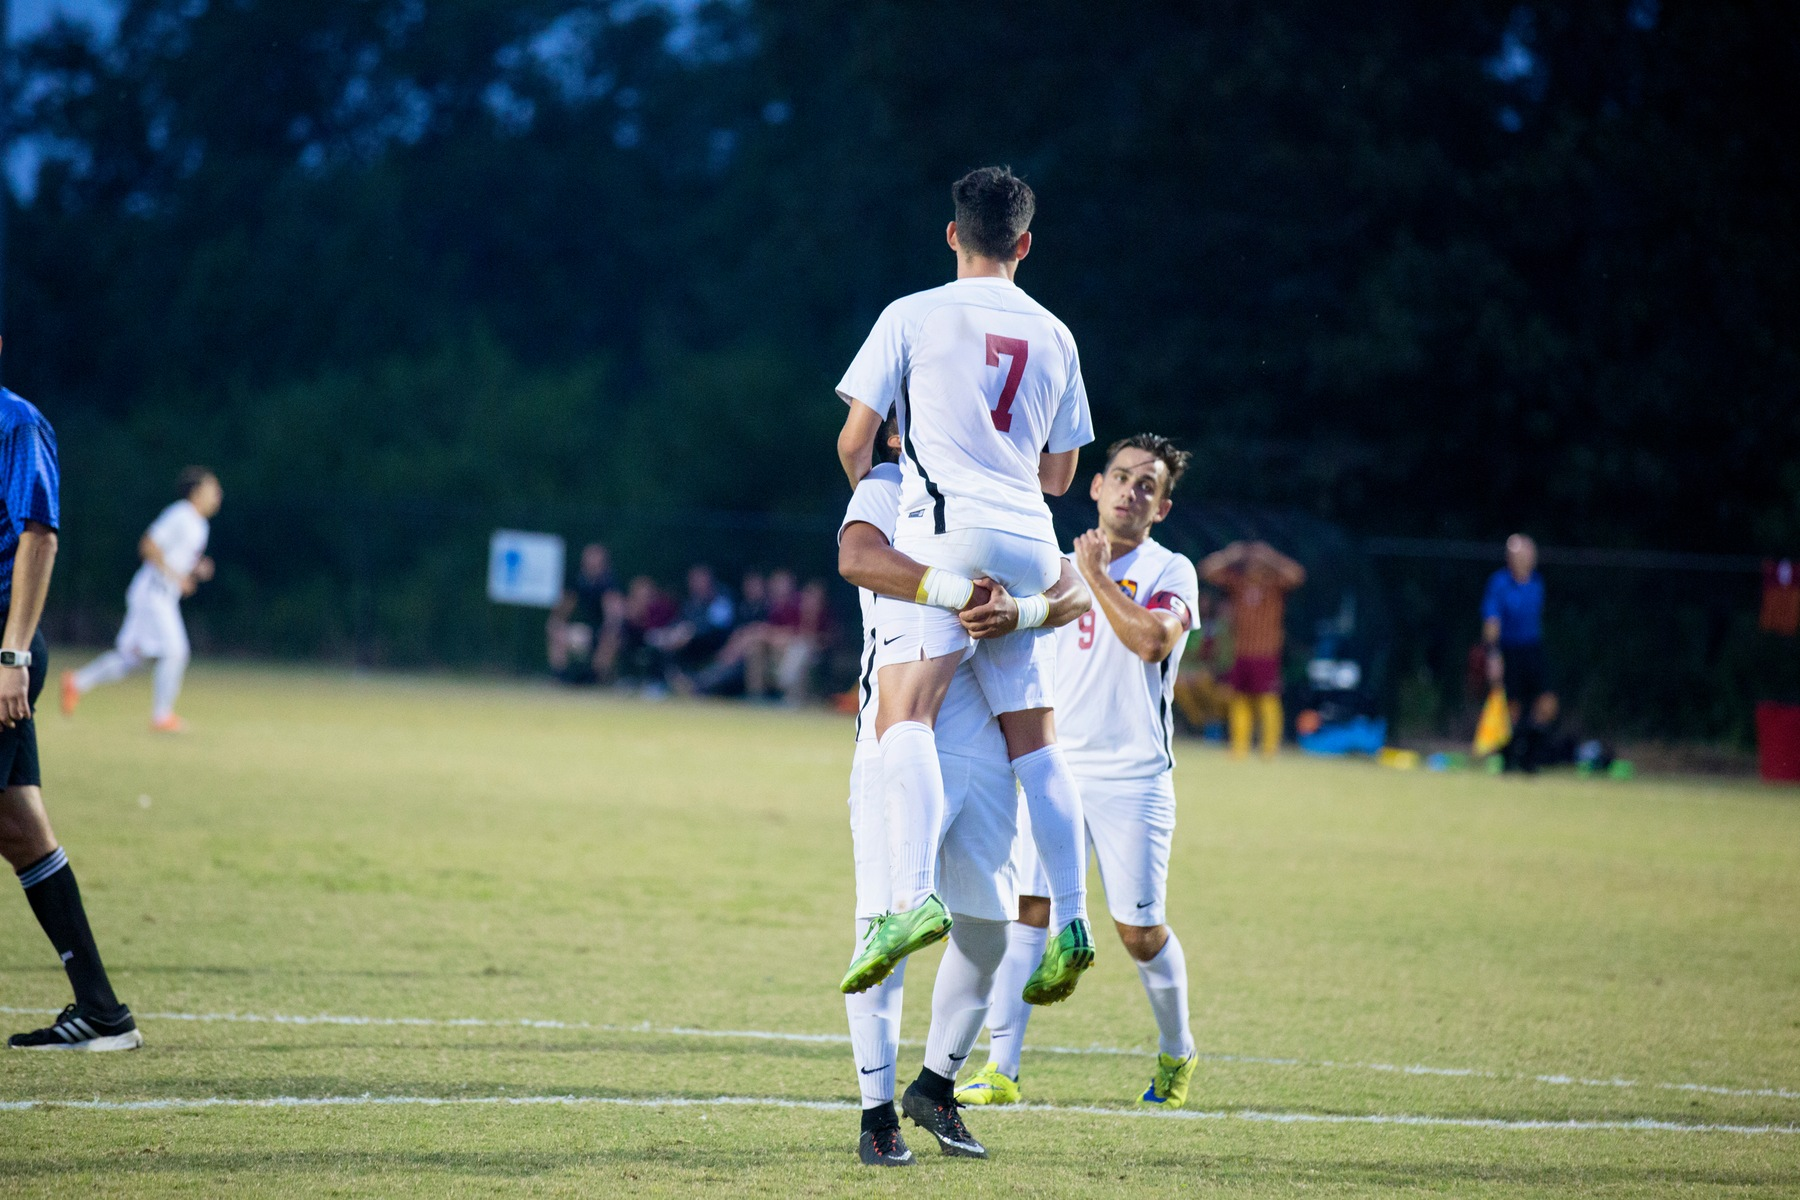 Men's Soccer Captures First Win of the Season